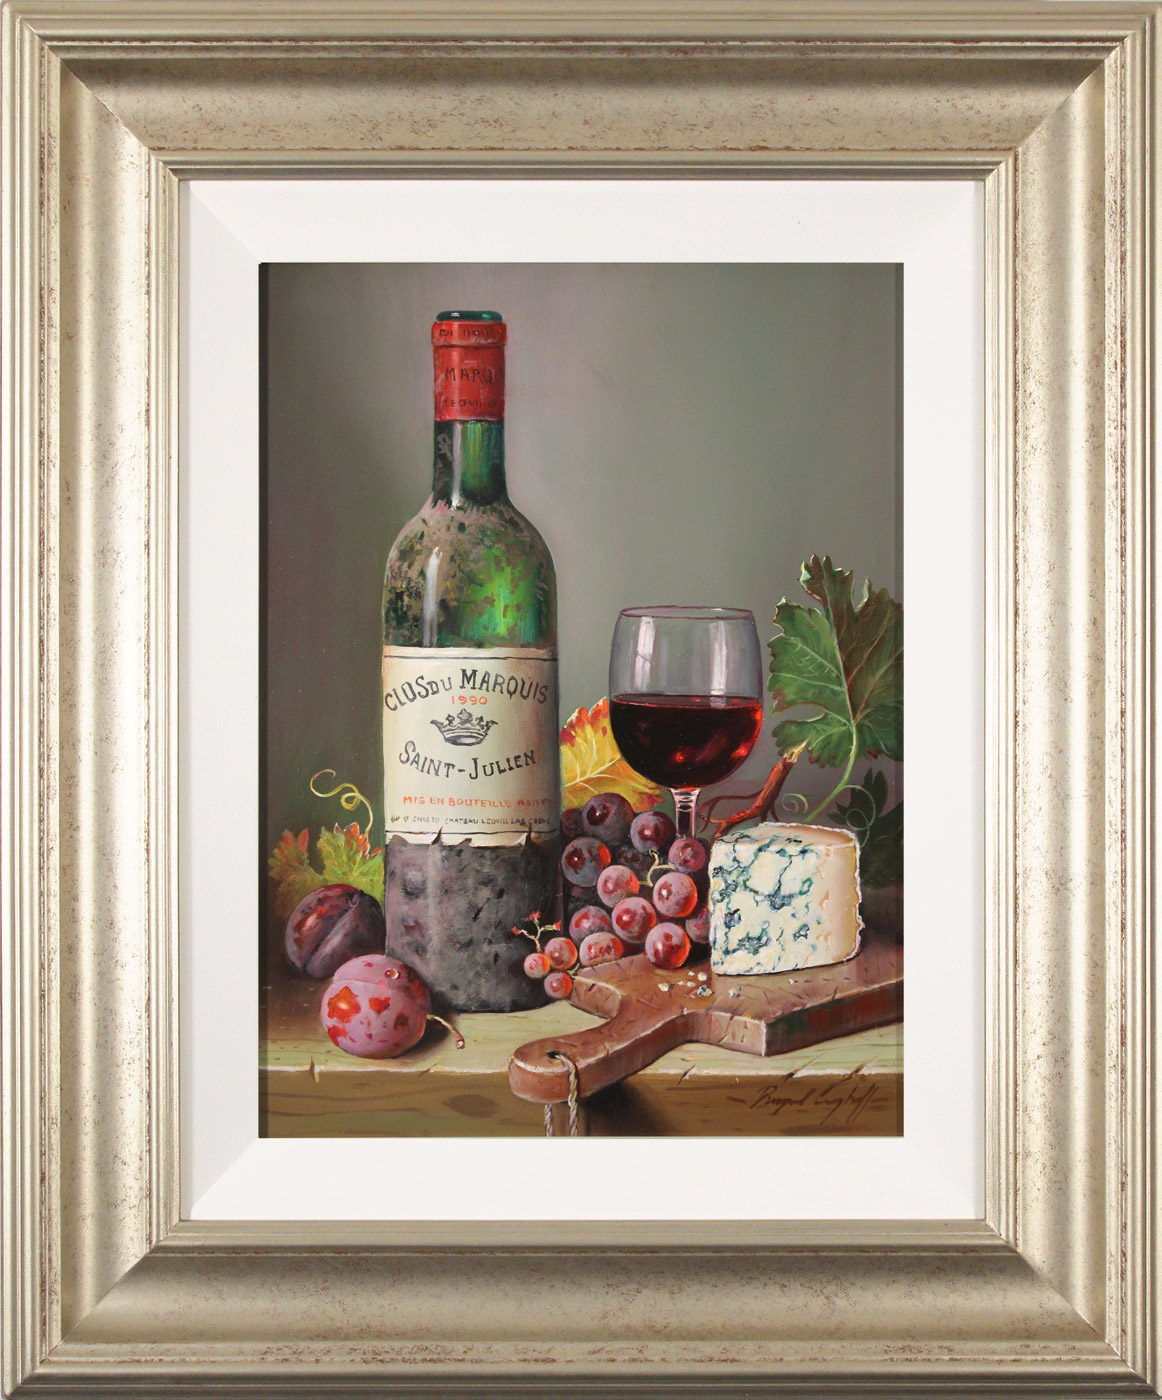 Raymond Campbell, Original oil painting on panel, Clos du Marquis, 1990, click to enlarge